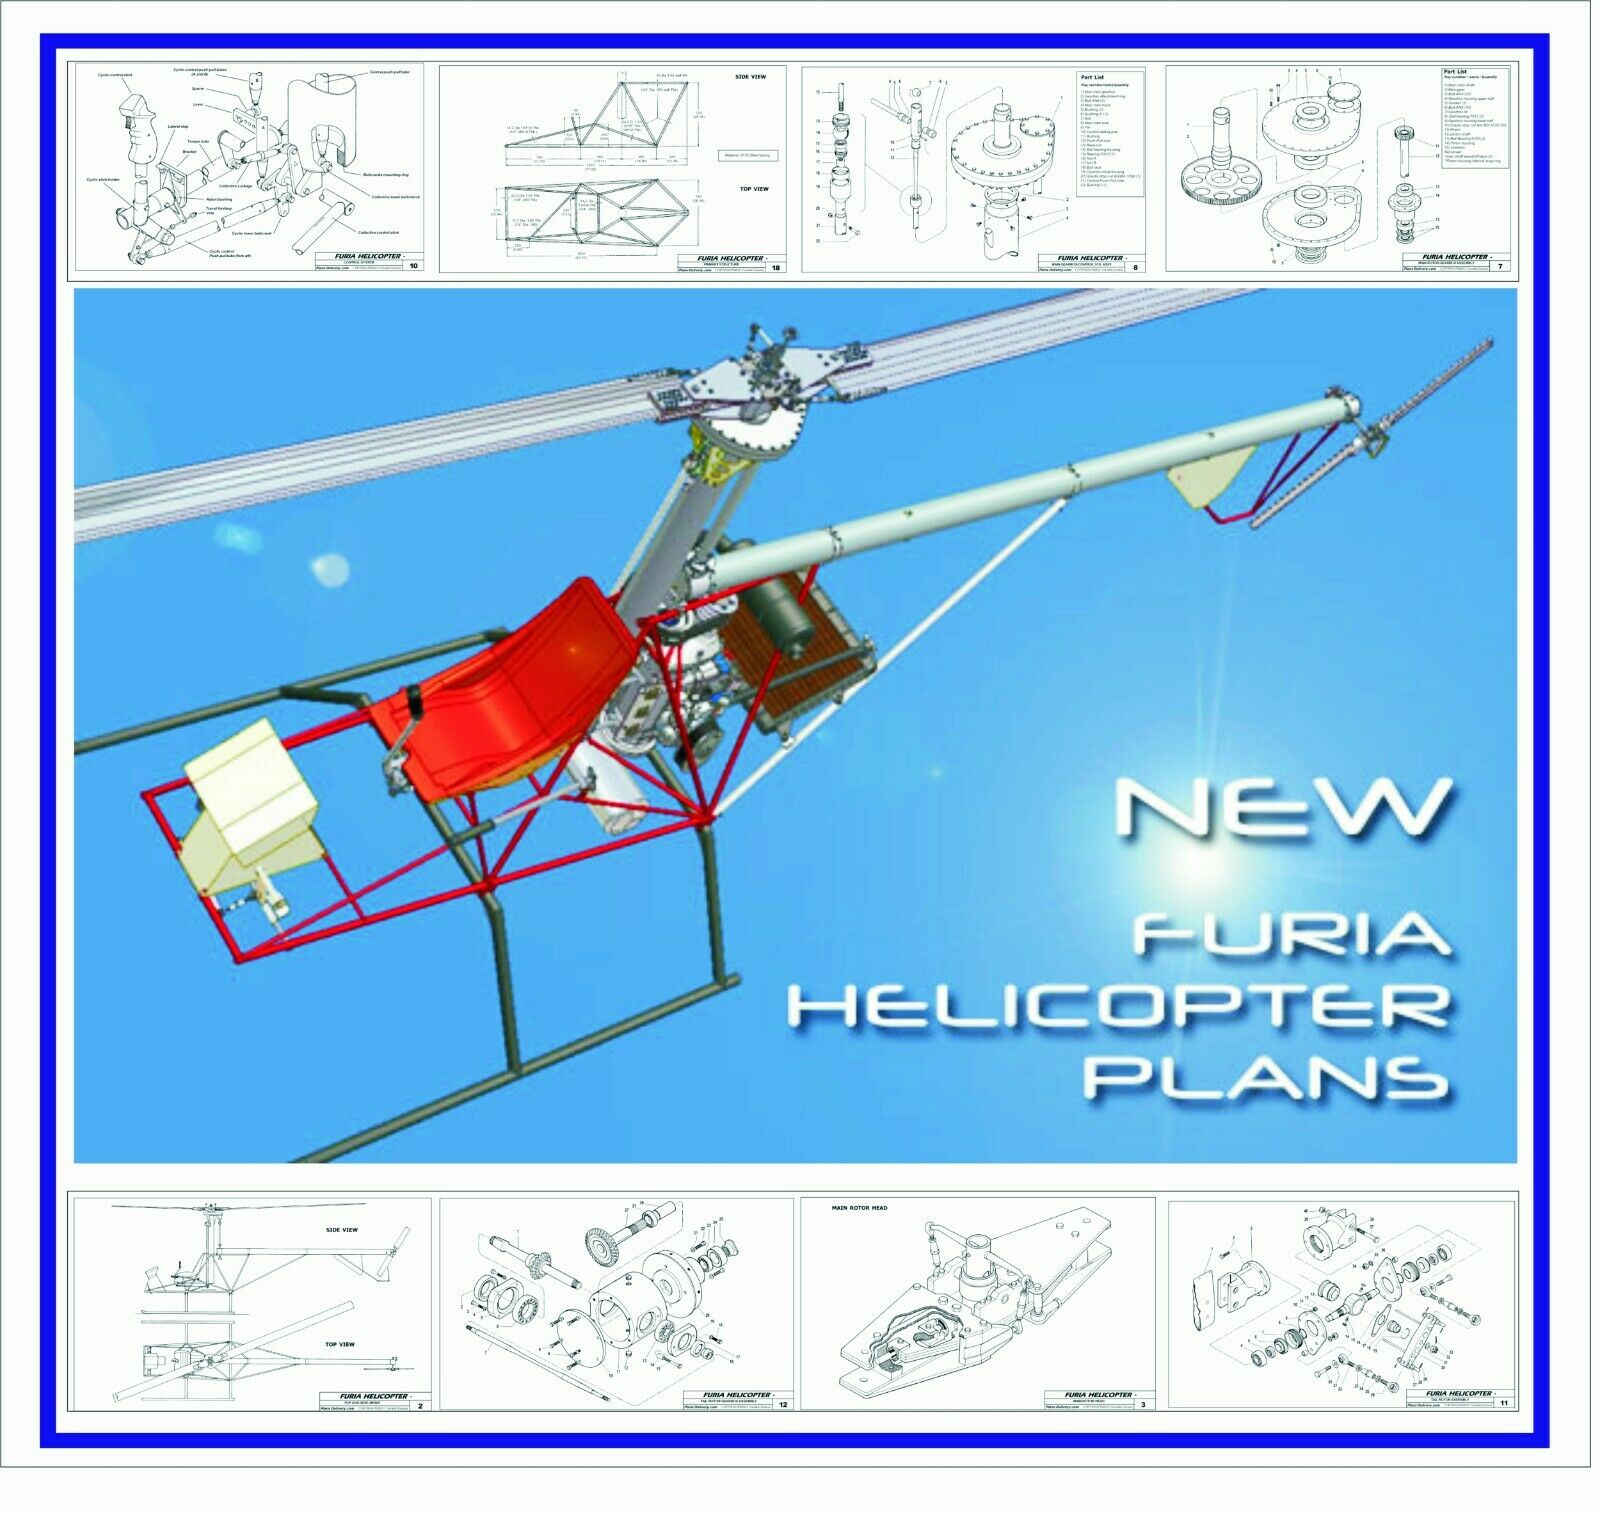 Helicopter Furia. plane